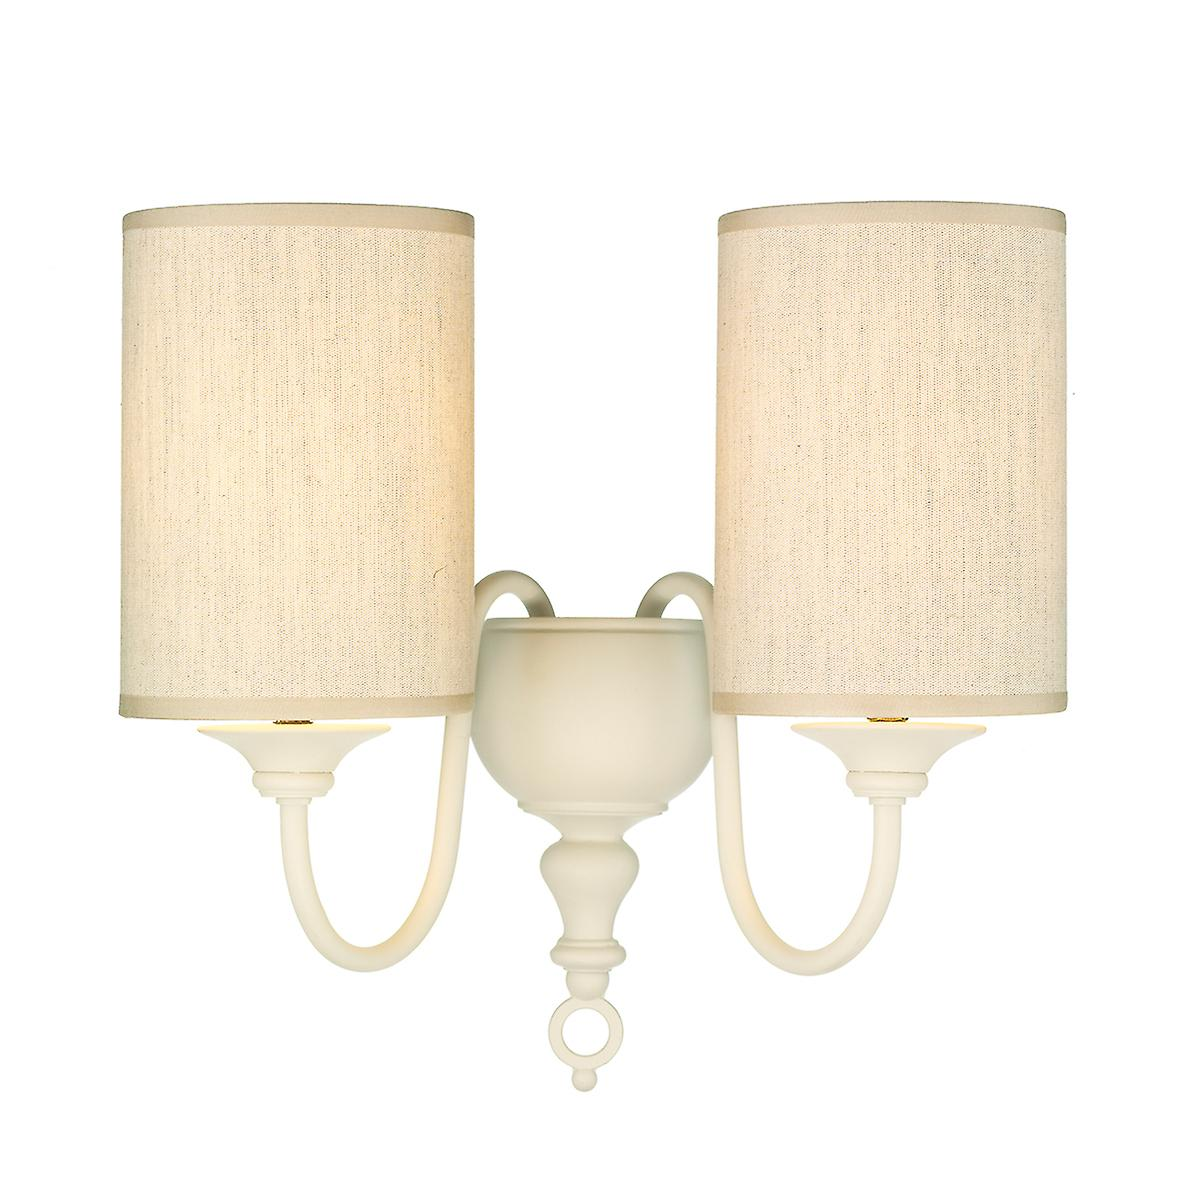 David Hunt FLE0933 Flemish Double Wall Bracket In A Cream Finish With Shade